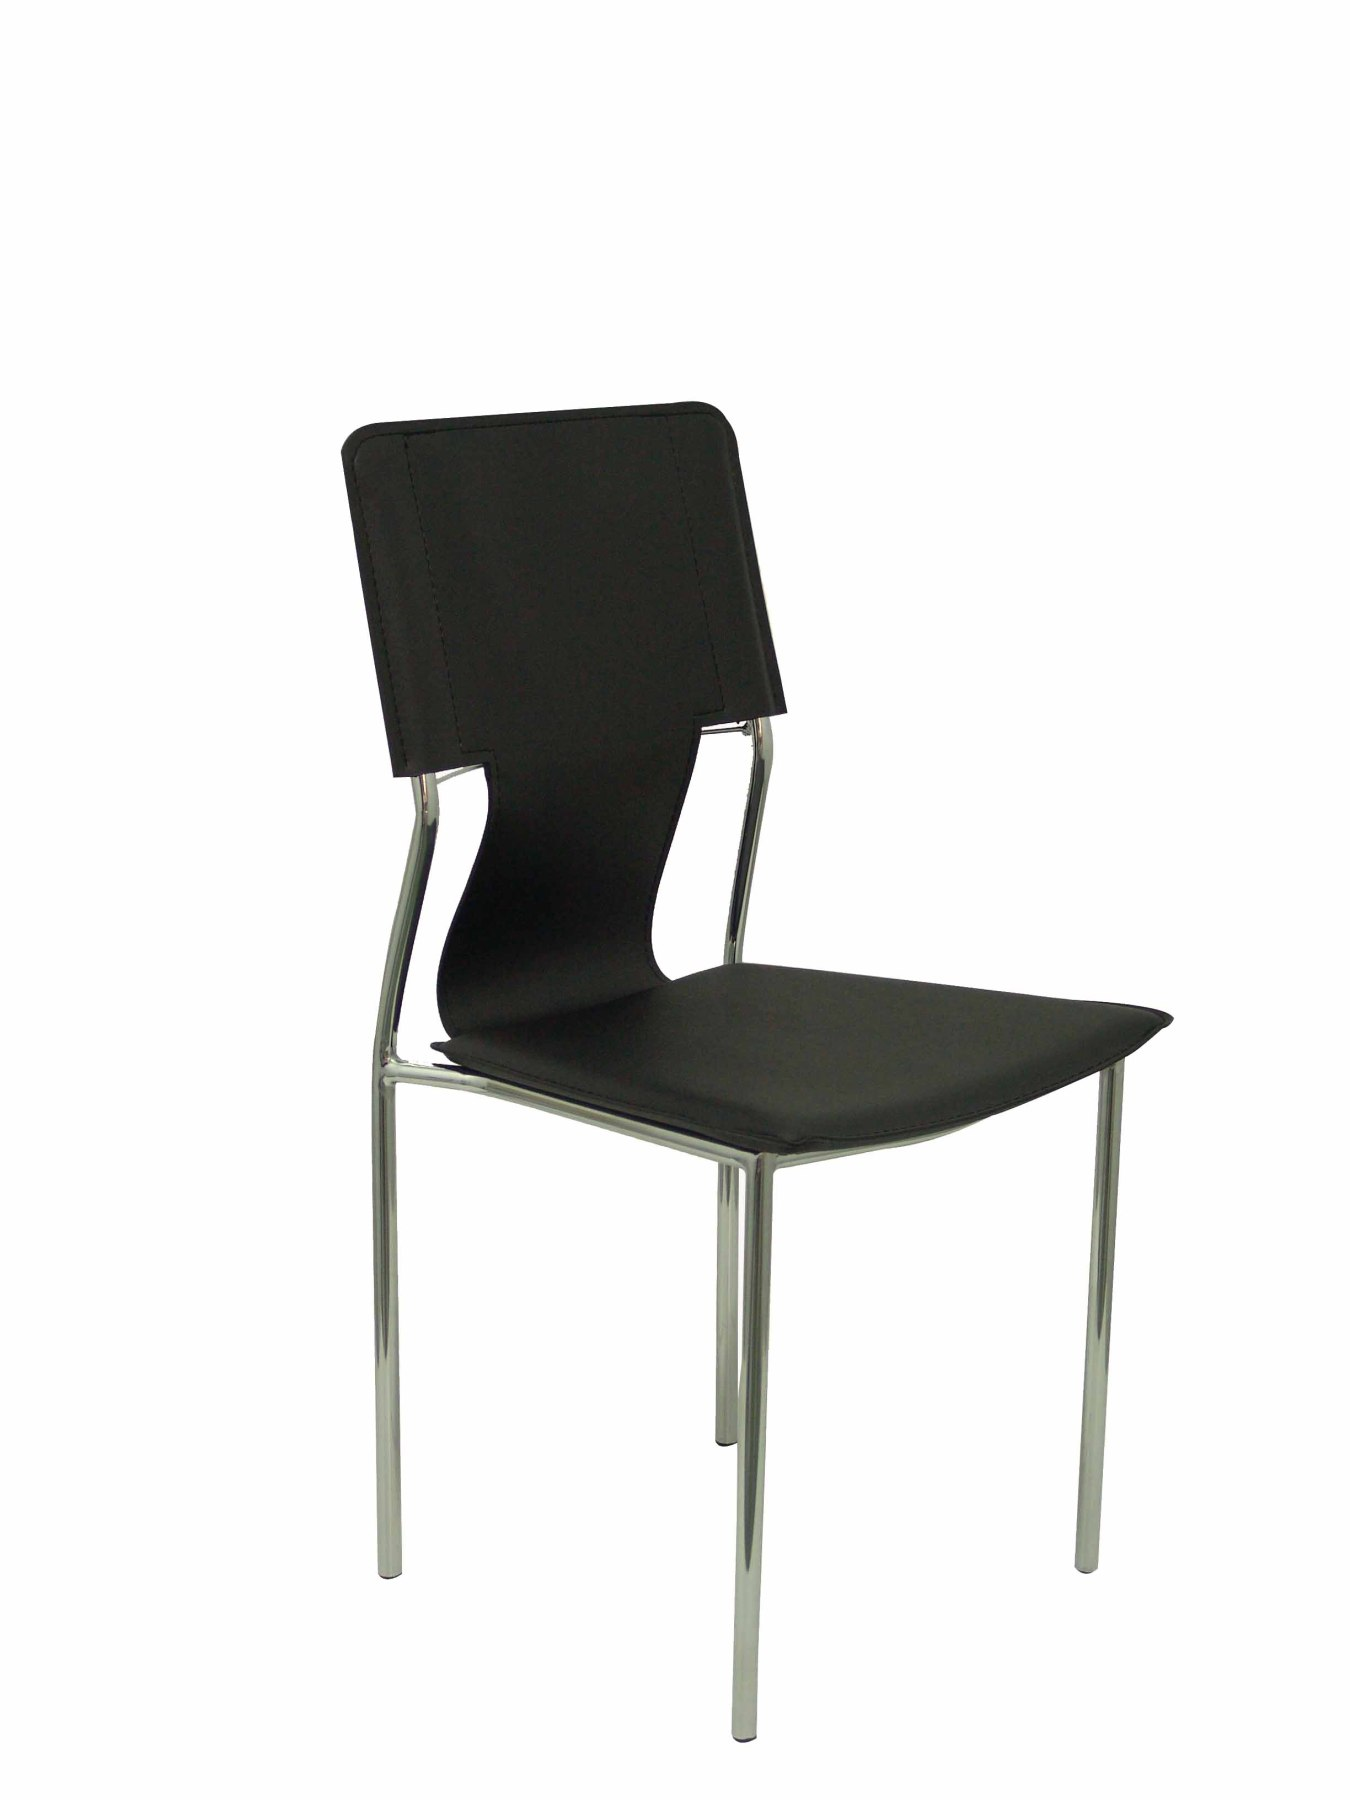 Pack 4 Chairs Confident Of 4 Legs With Estructrua Chrome Seat And Back Upholstered In Similpiel Color Black PIQU